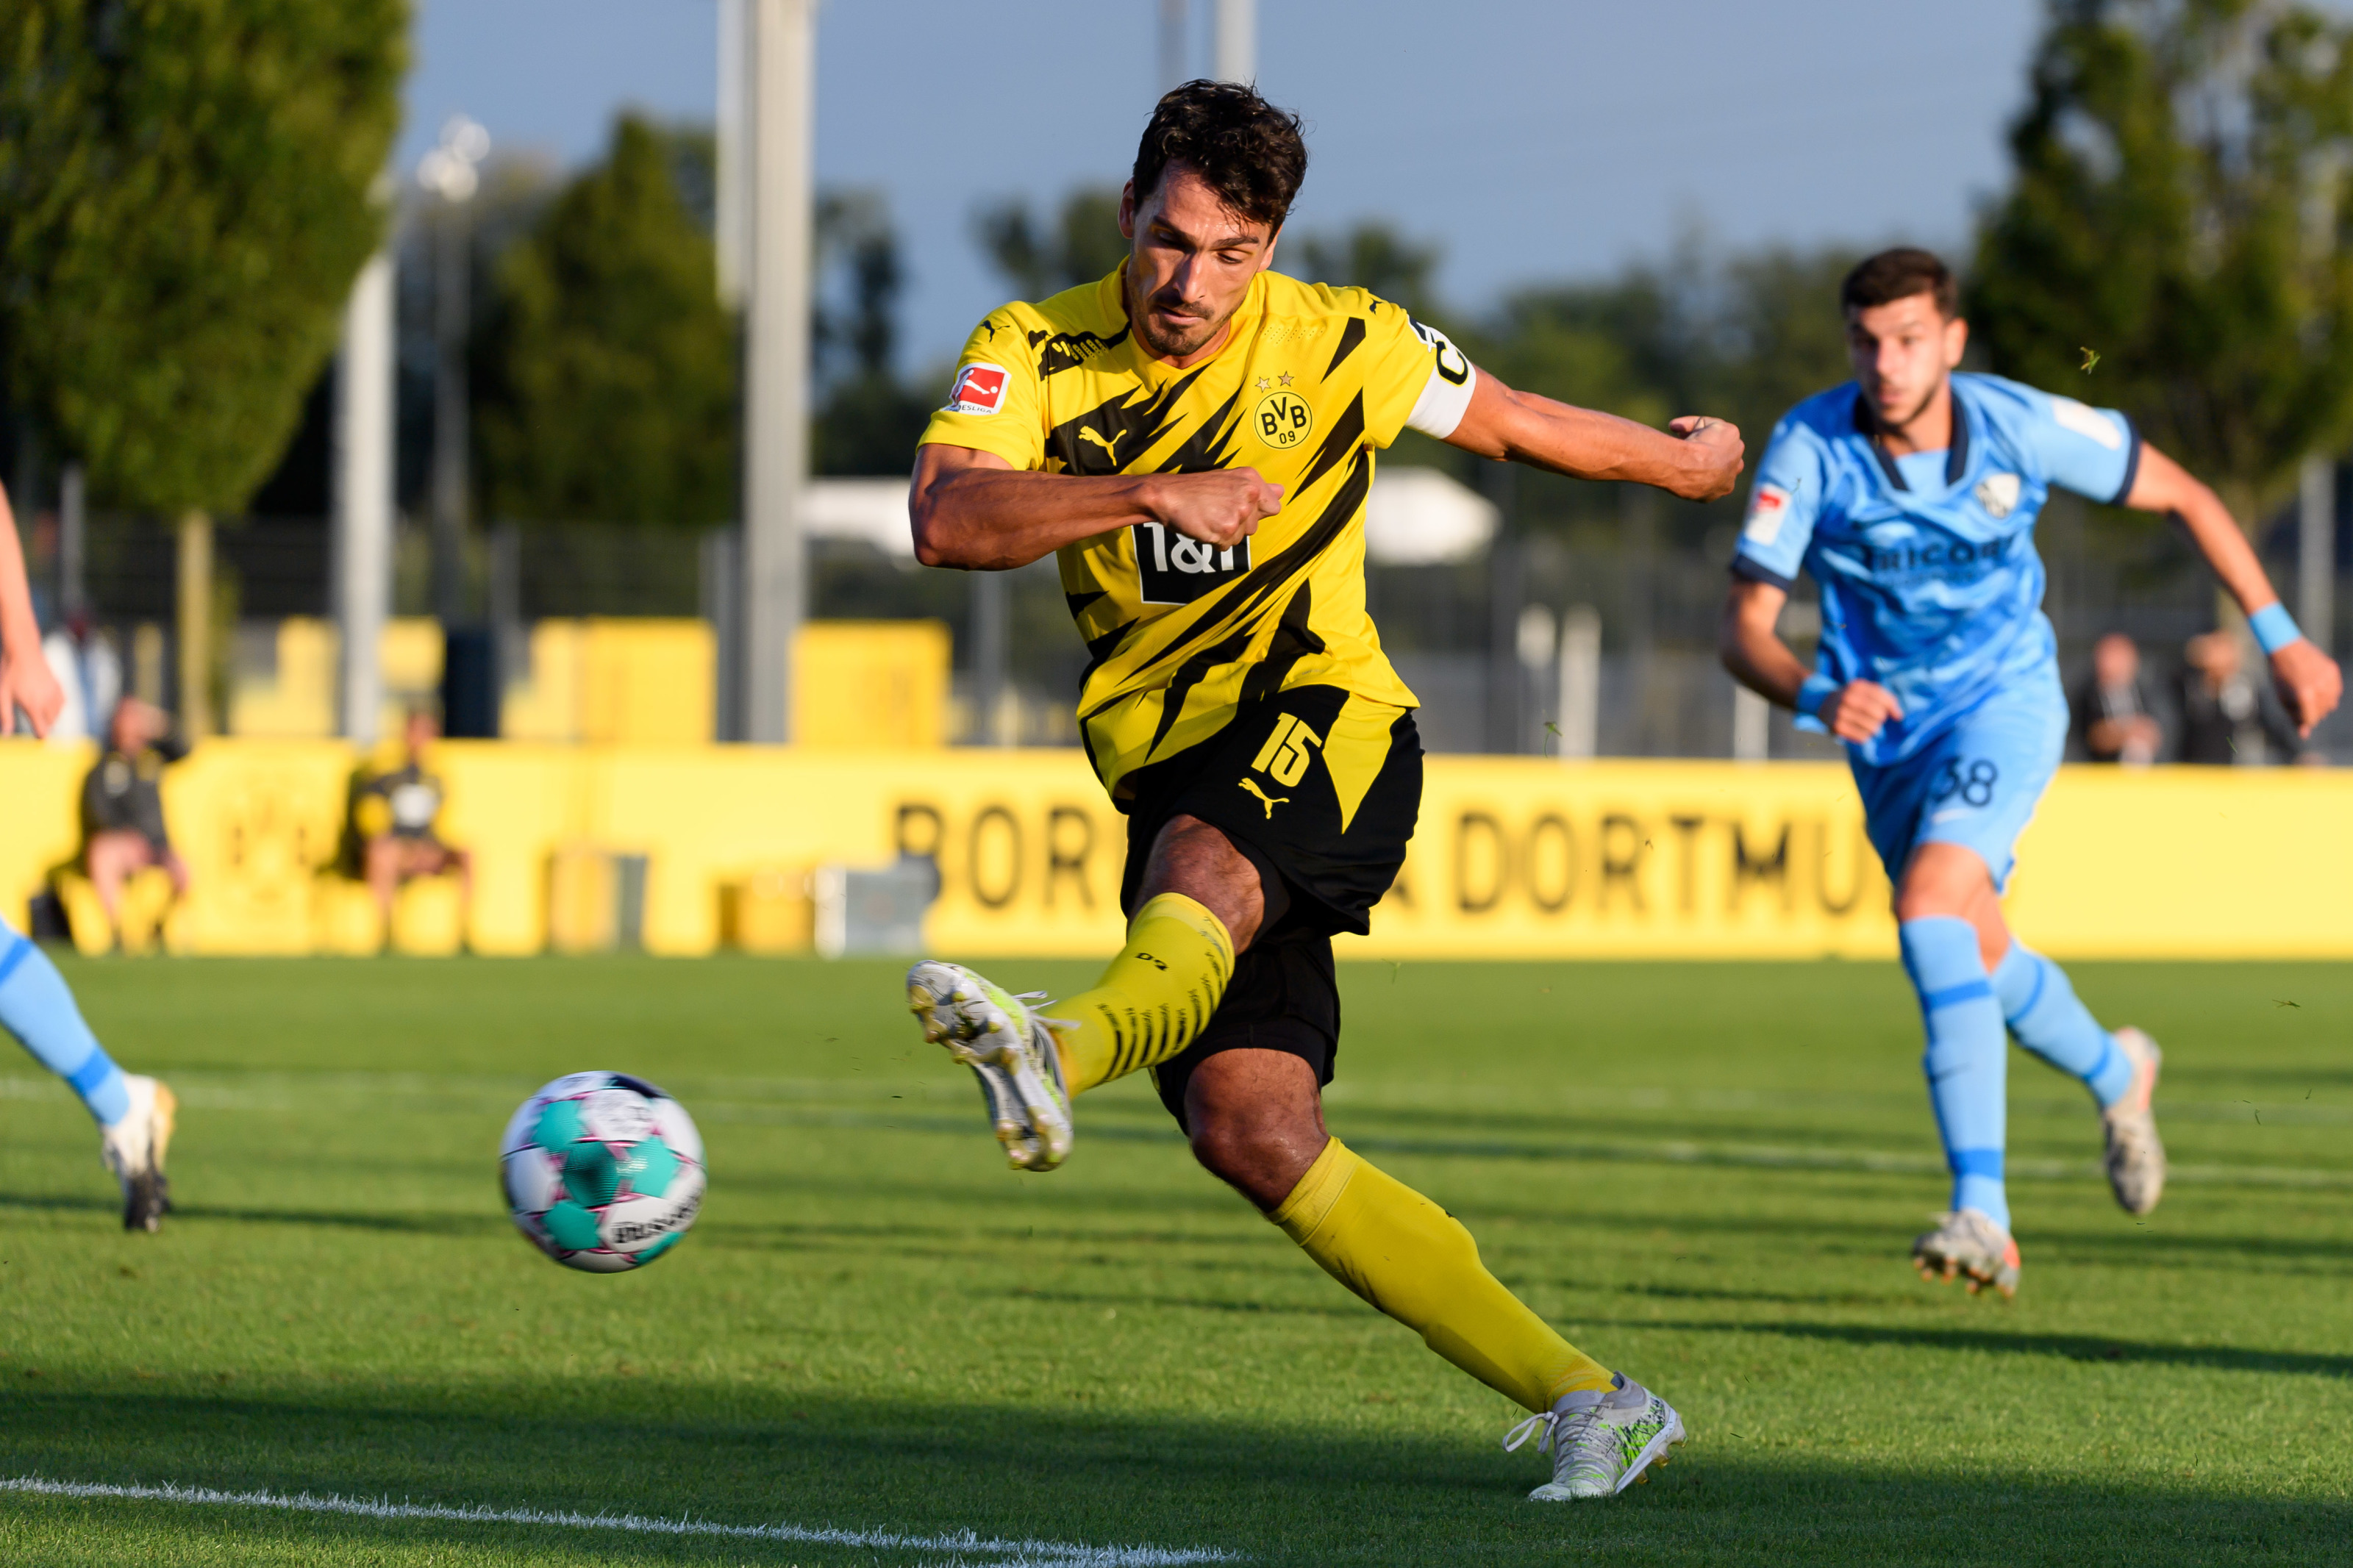 Borussia Dortmund Beaten By Vfl Bochum In Second Friendly Of The Day